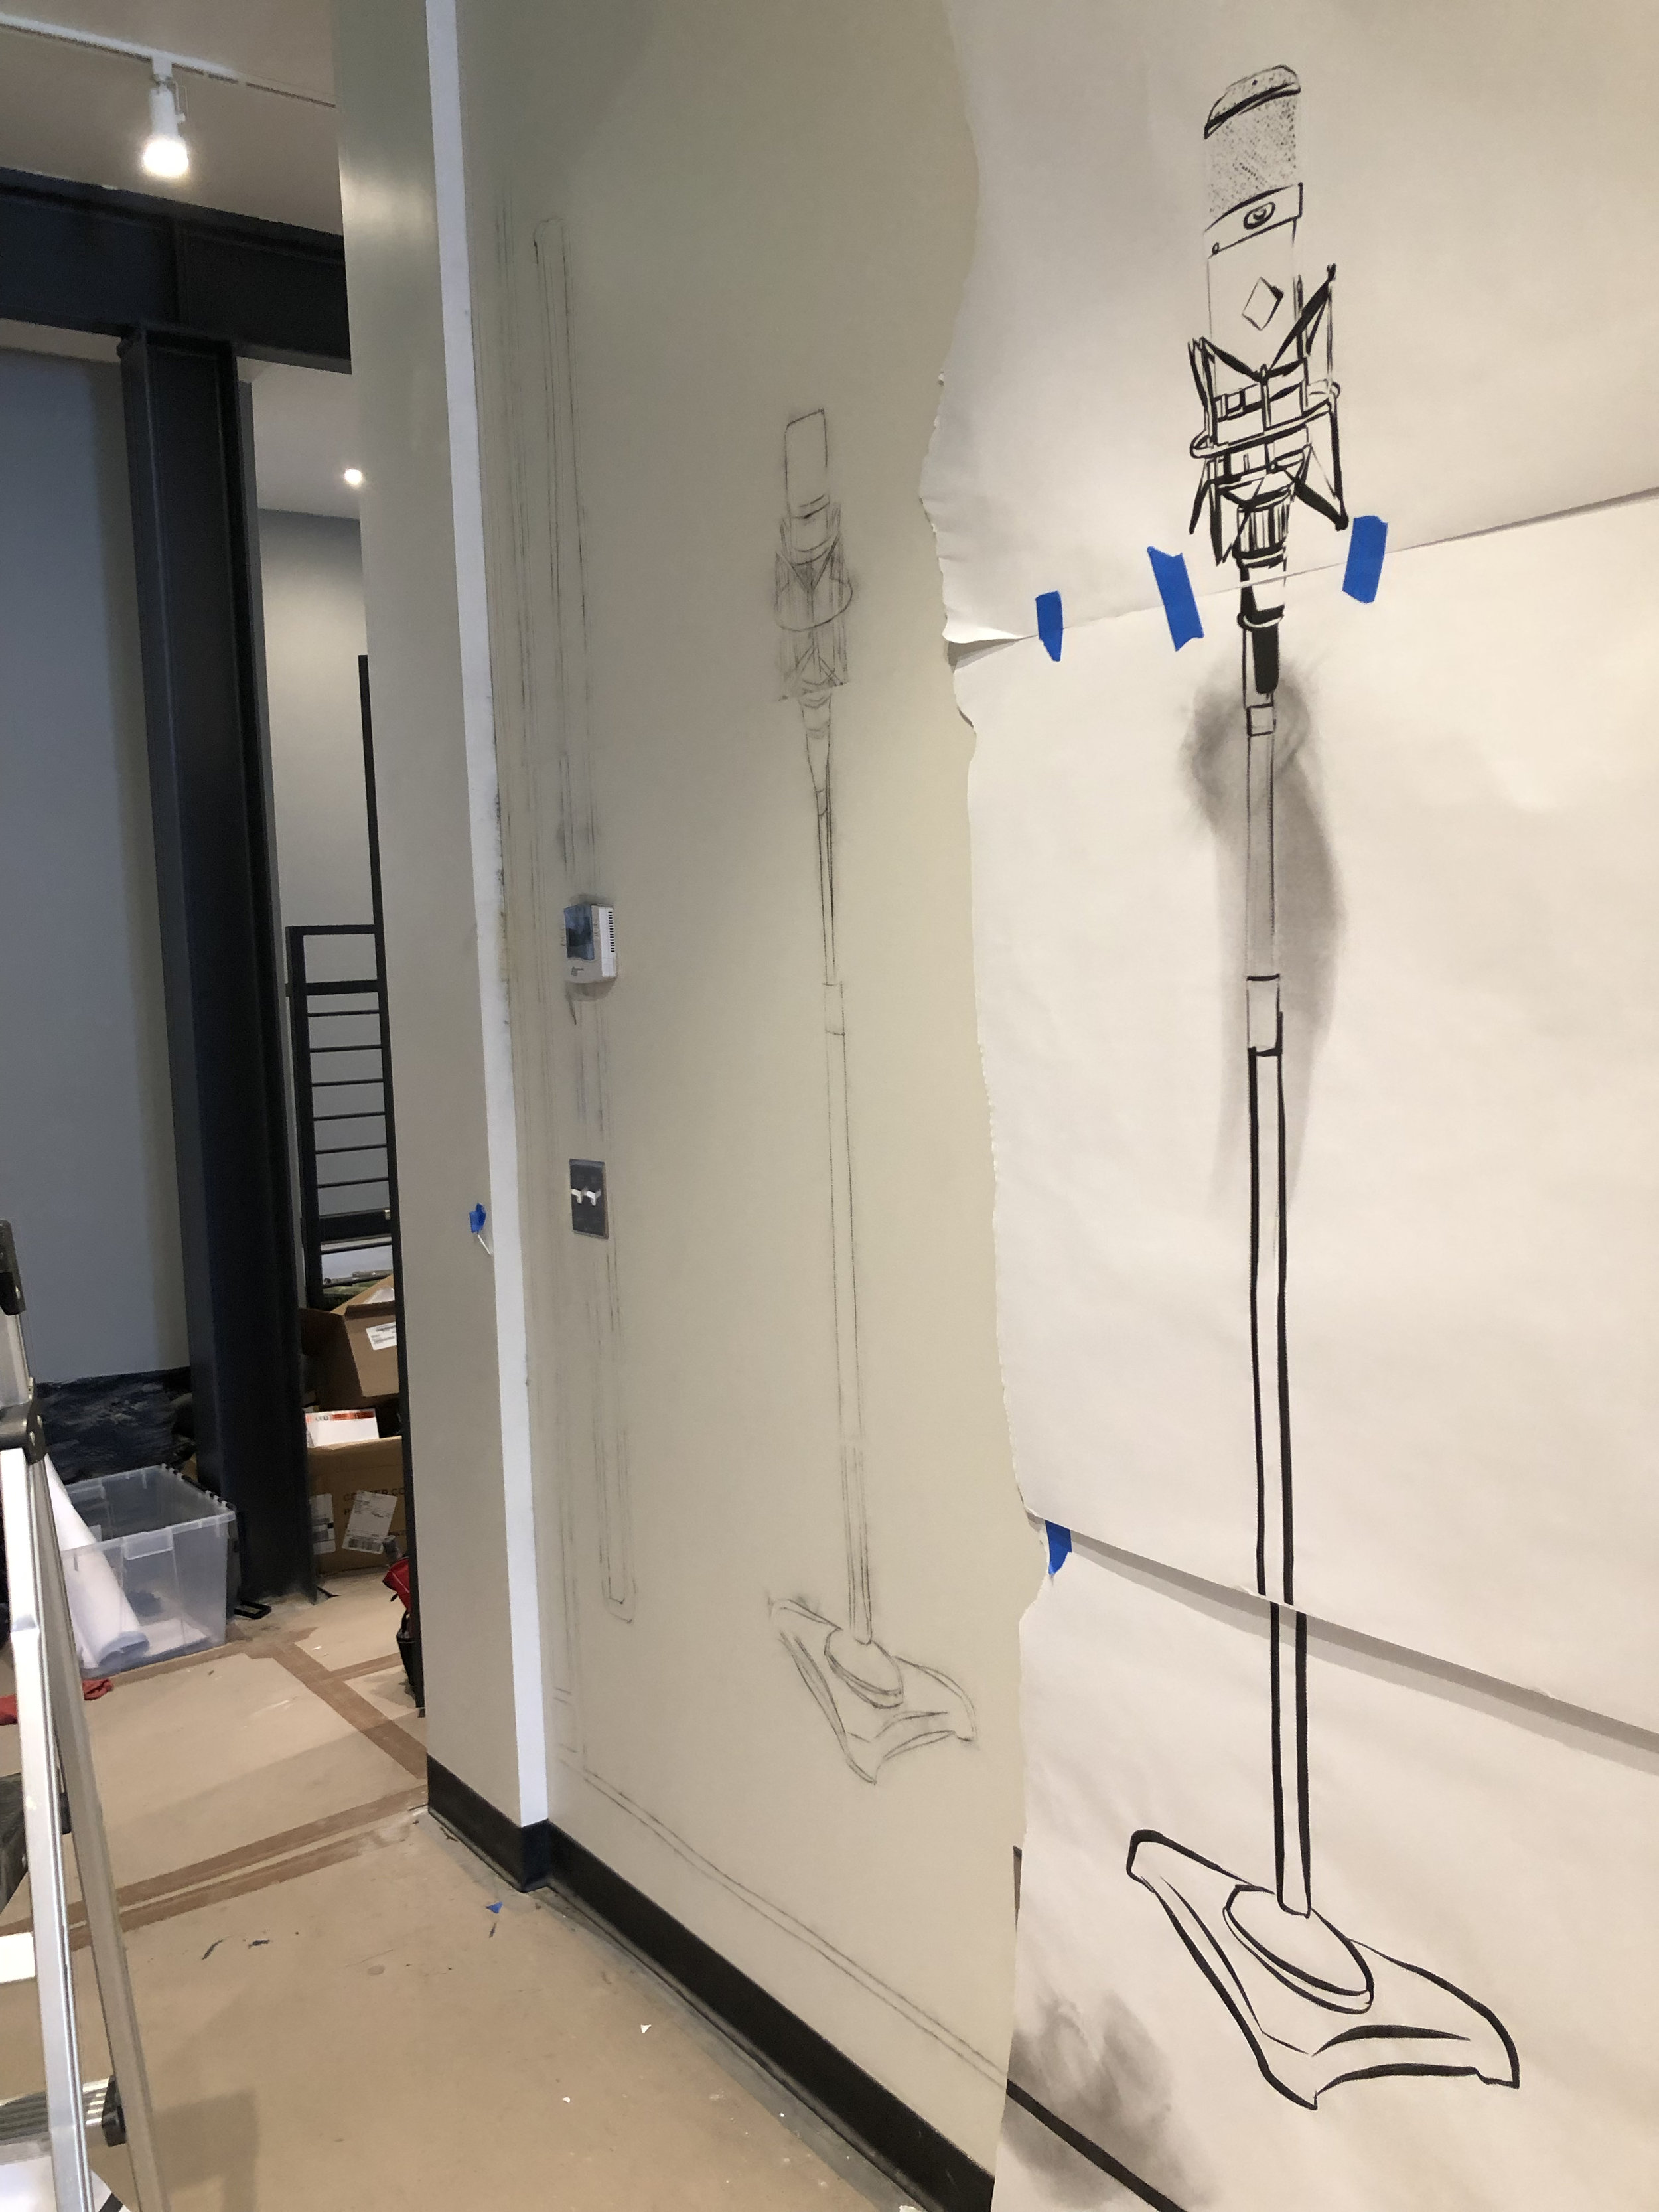 Jake printed the drawing out and then used a    pounce wheel    to perforate along the lines. Then the prints are hung in place and a    pounce pad    is used to beat chalk through the small holes on to the wall. You can see the chalk lines to the left where the paper has been removed.